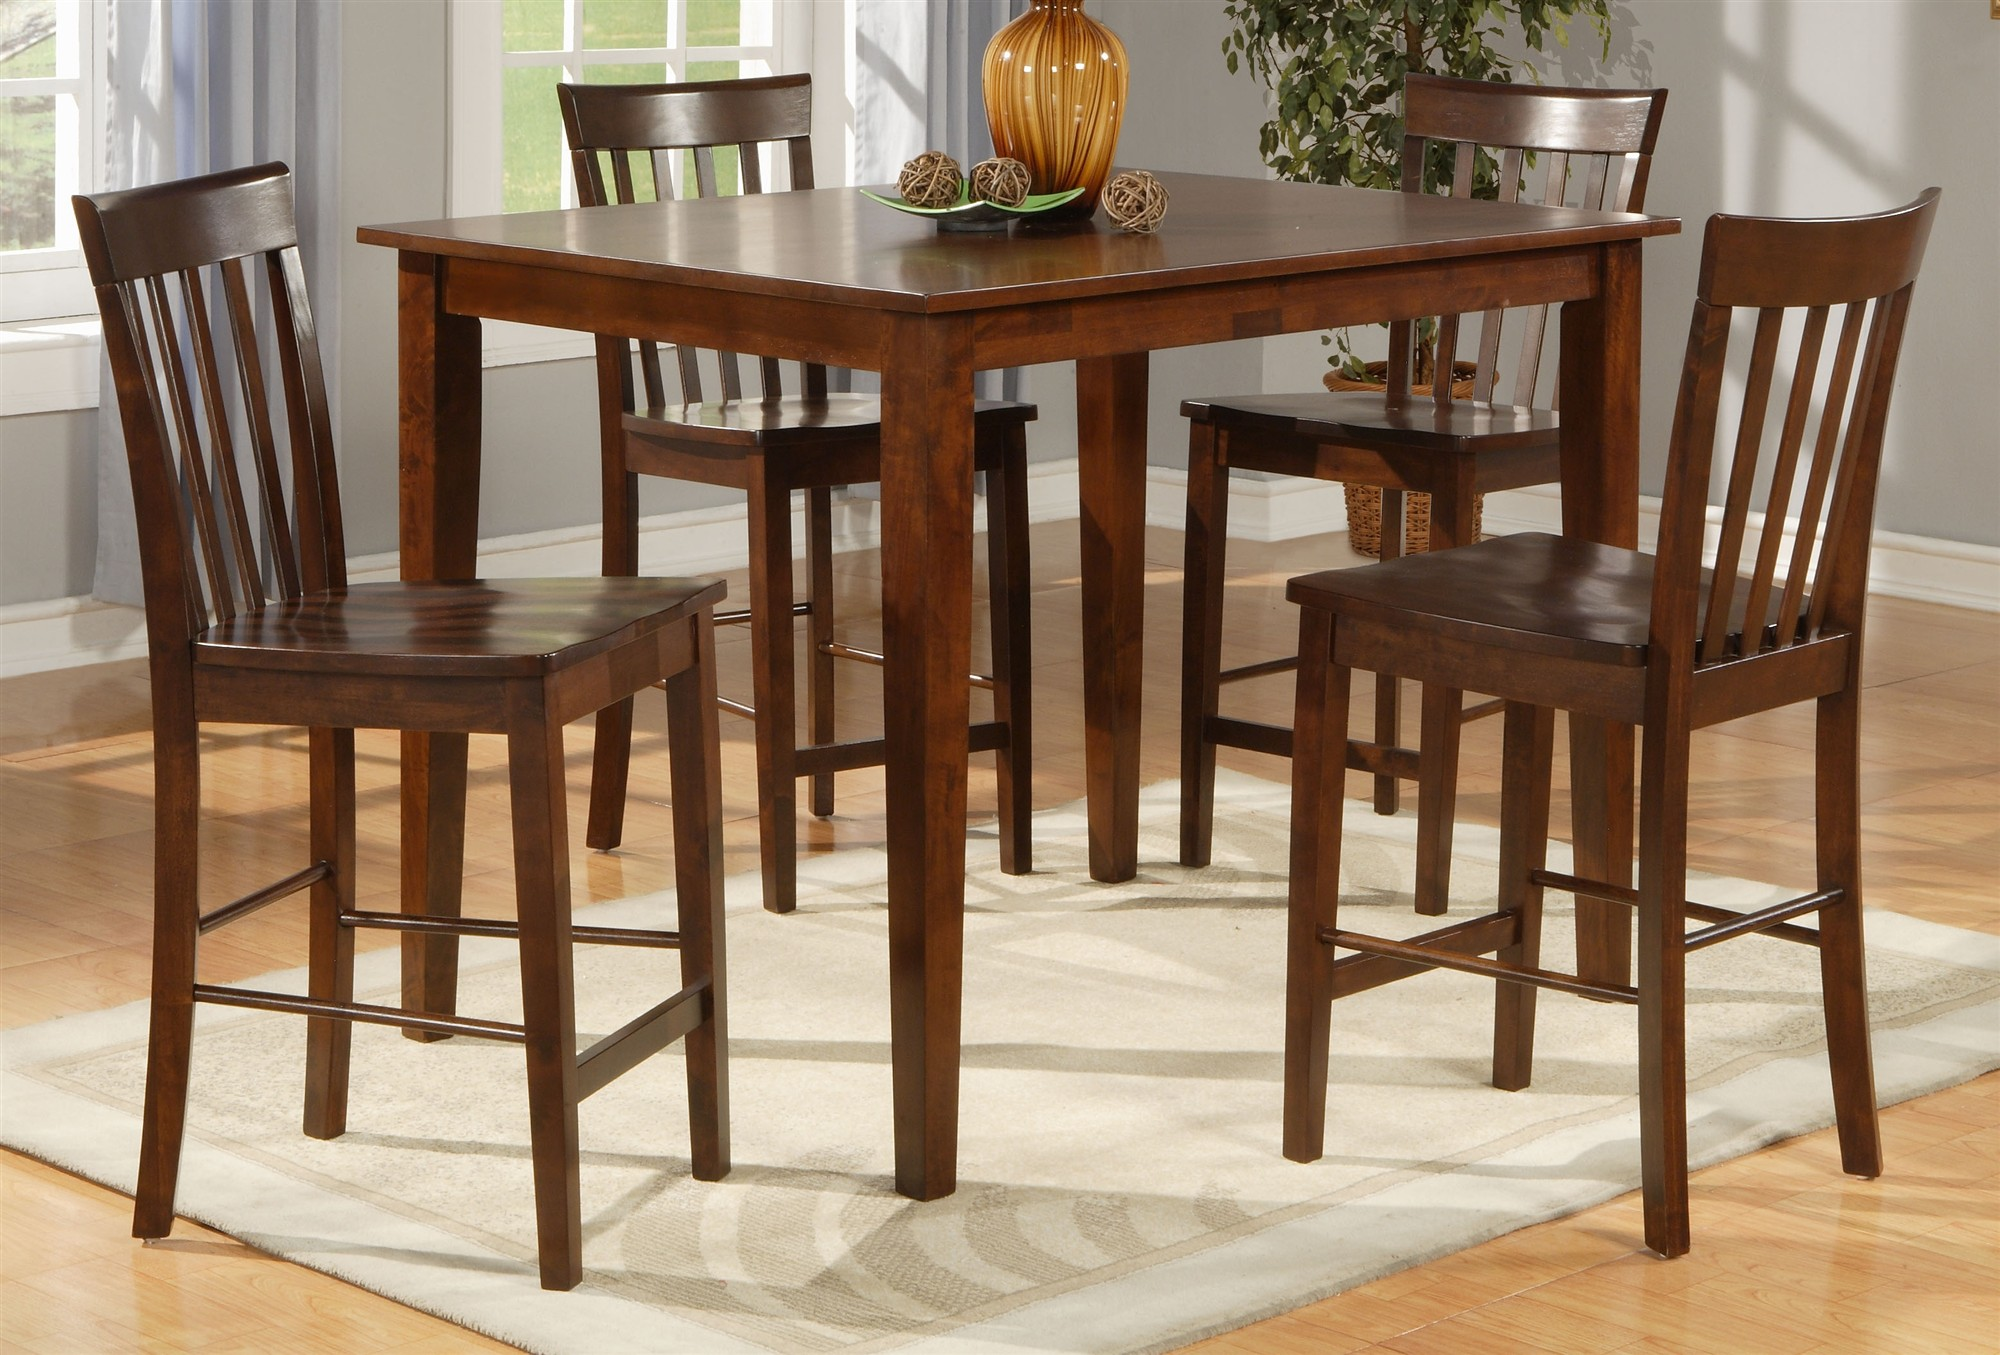 Square dining table for 4 homesfeed for Dining room table and 4 chairs